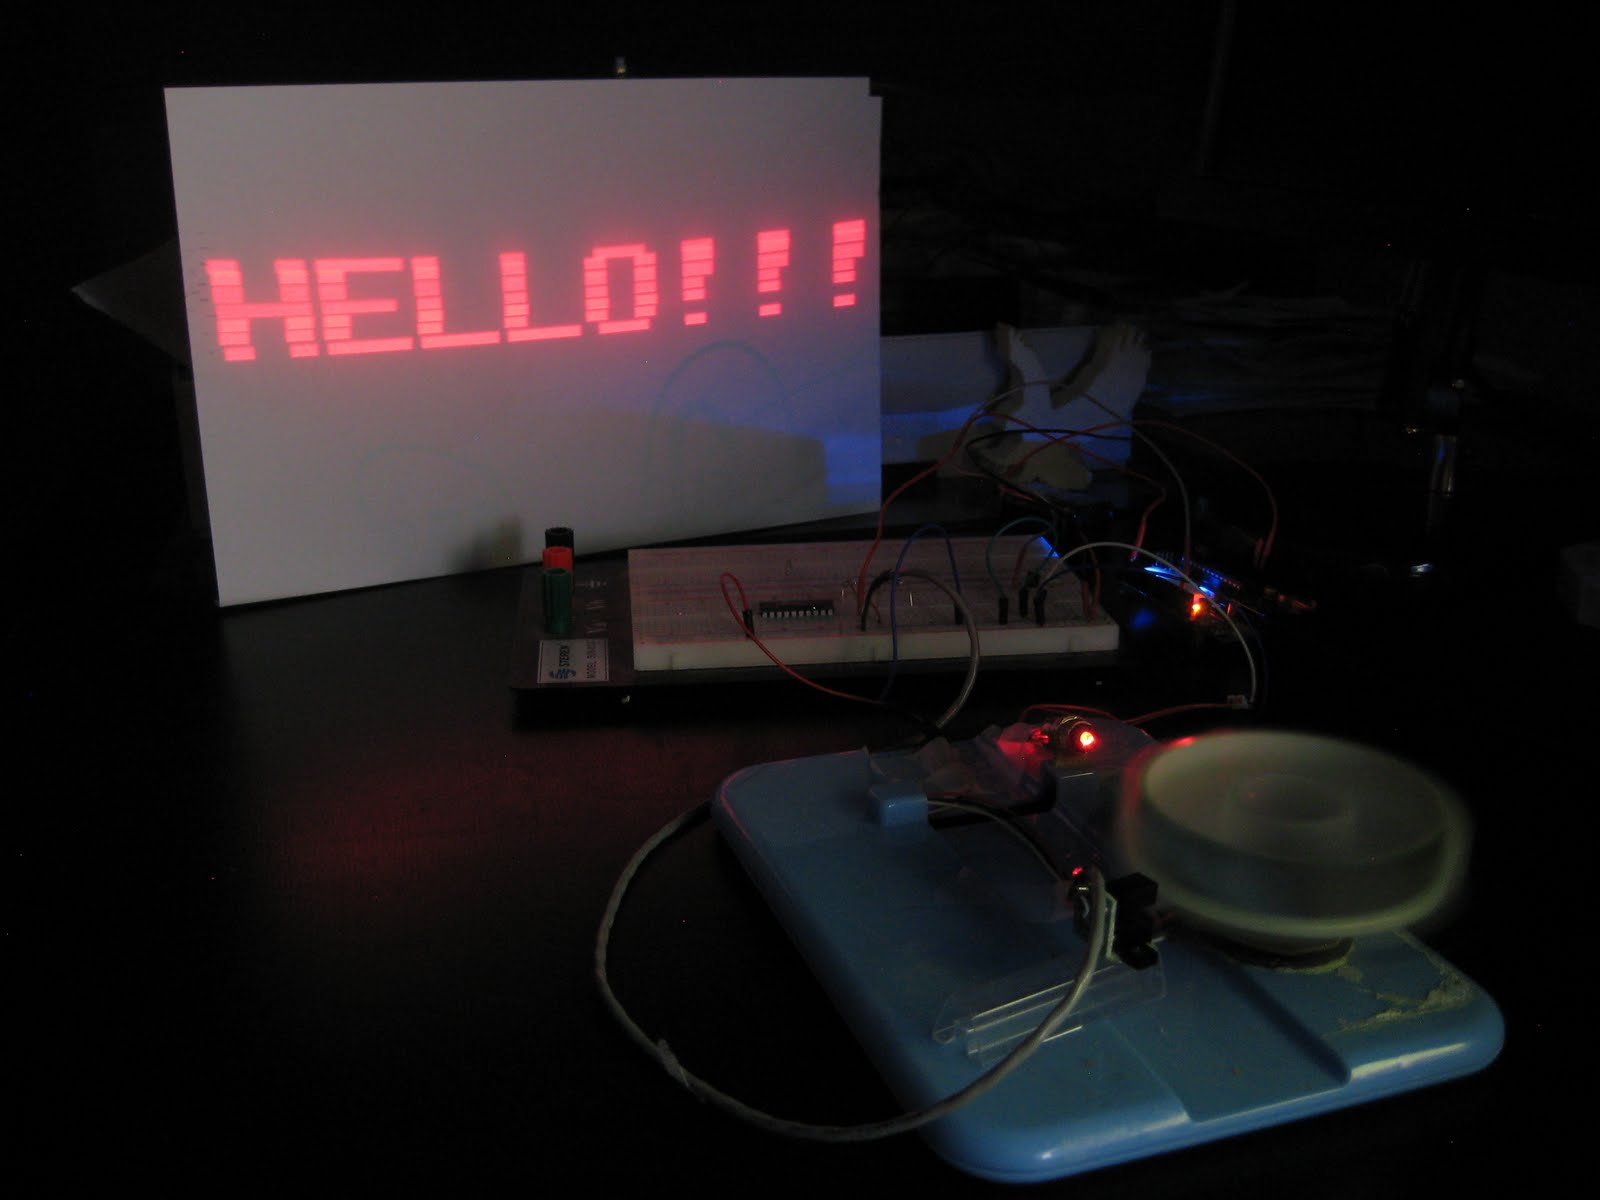 Diy Pillbox Laser Projector Make